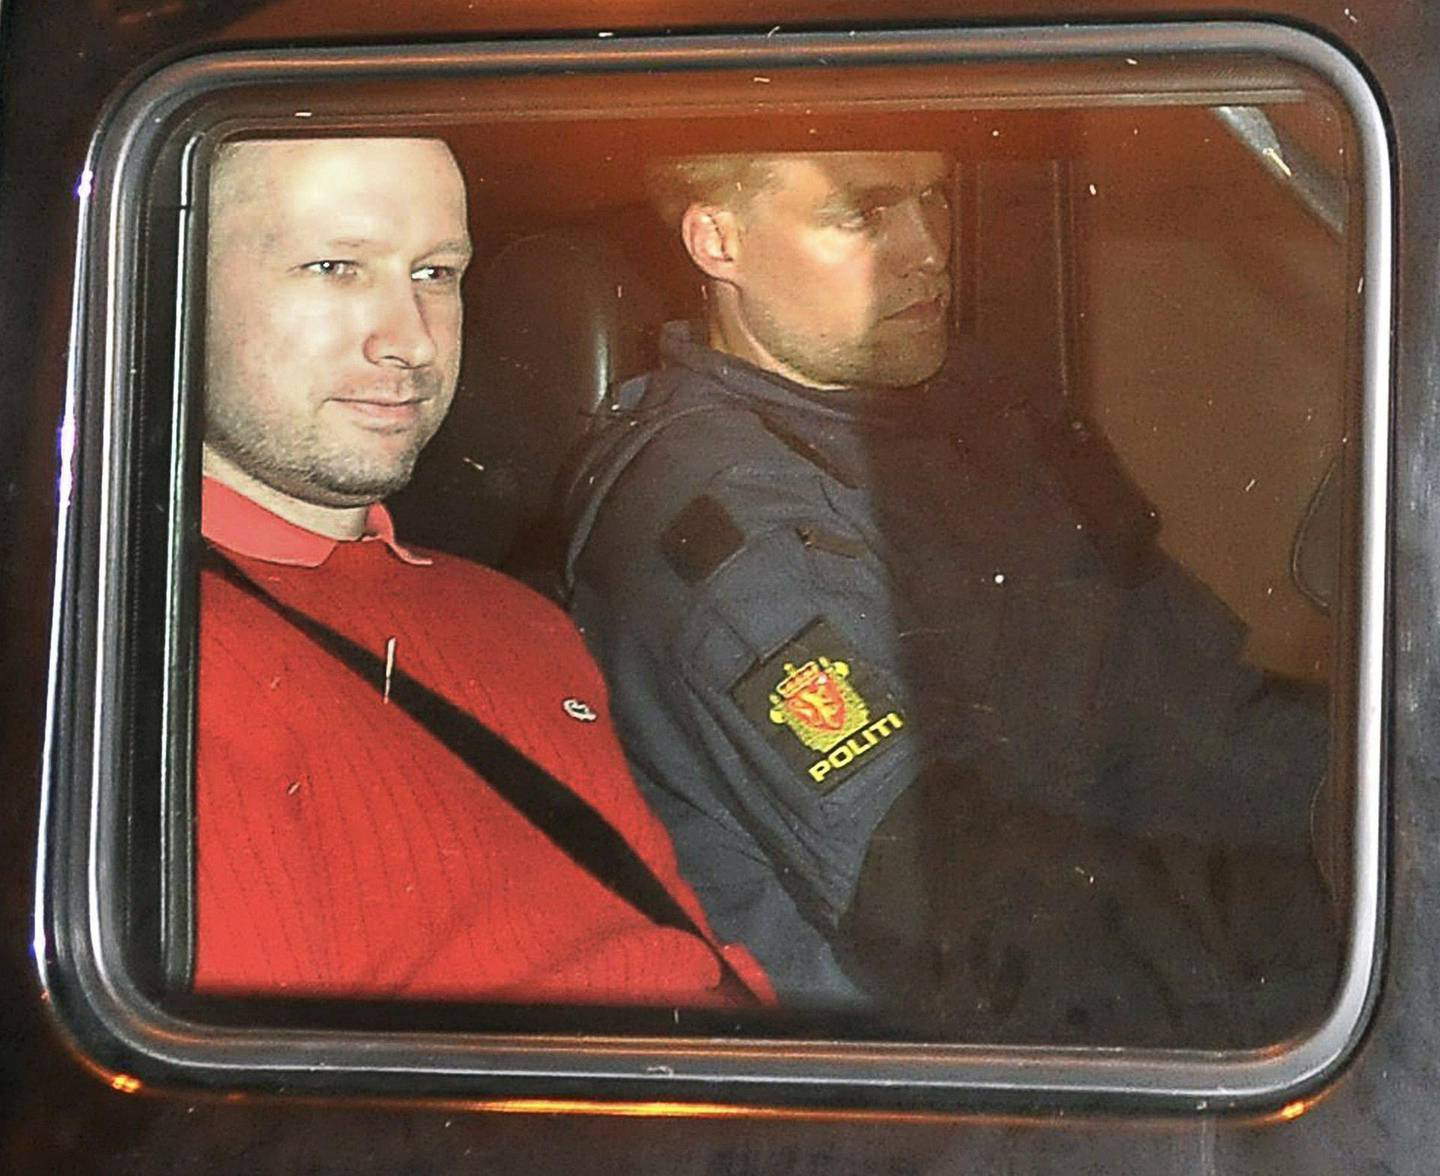 Bomb and terror suspect Anders Behring Breivik (red top) leaves the courthouse  in a police car  in Oslo on July 25, 2011, after the hearing to decide his further detention.  Breivik will be held in solitary confinement for the first four weeks, with a ban on all communication with the outside world in a bid to aid a police investigation into his acts. AFP Photo Jon-Are Berg-Jacobsen / Aftenposten  *** Local Caption ***  490497-01-08.jpg